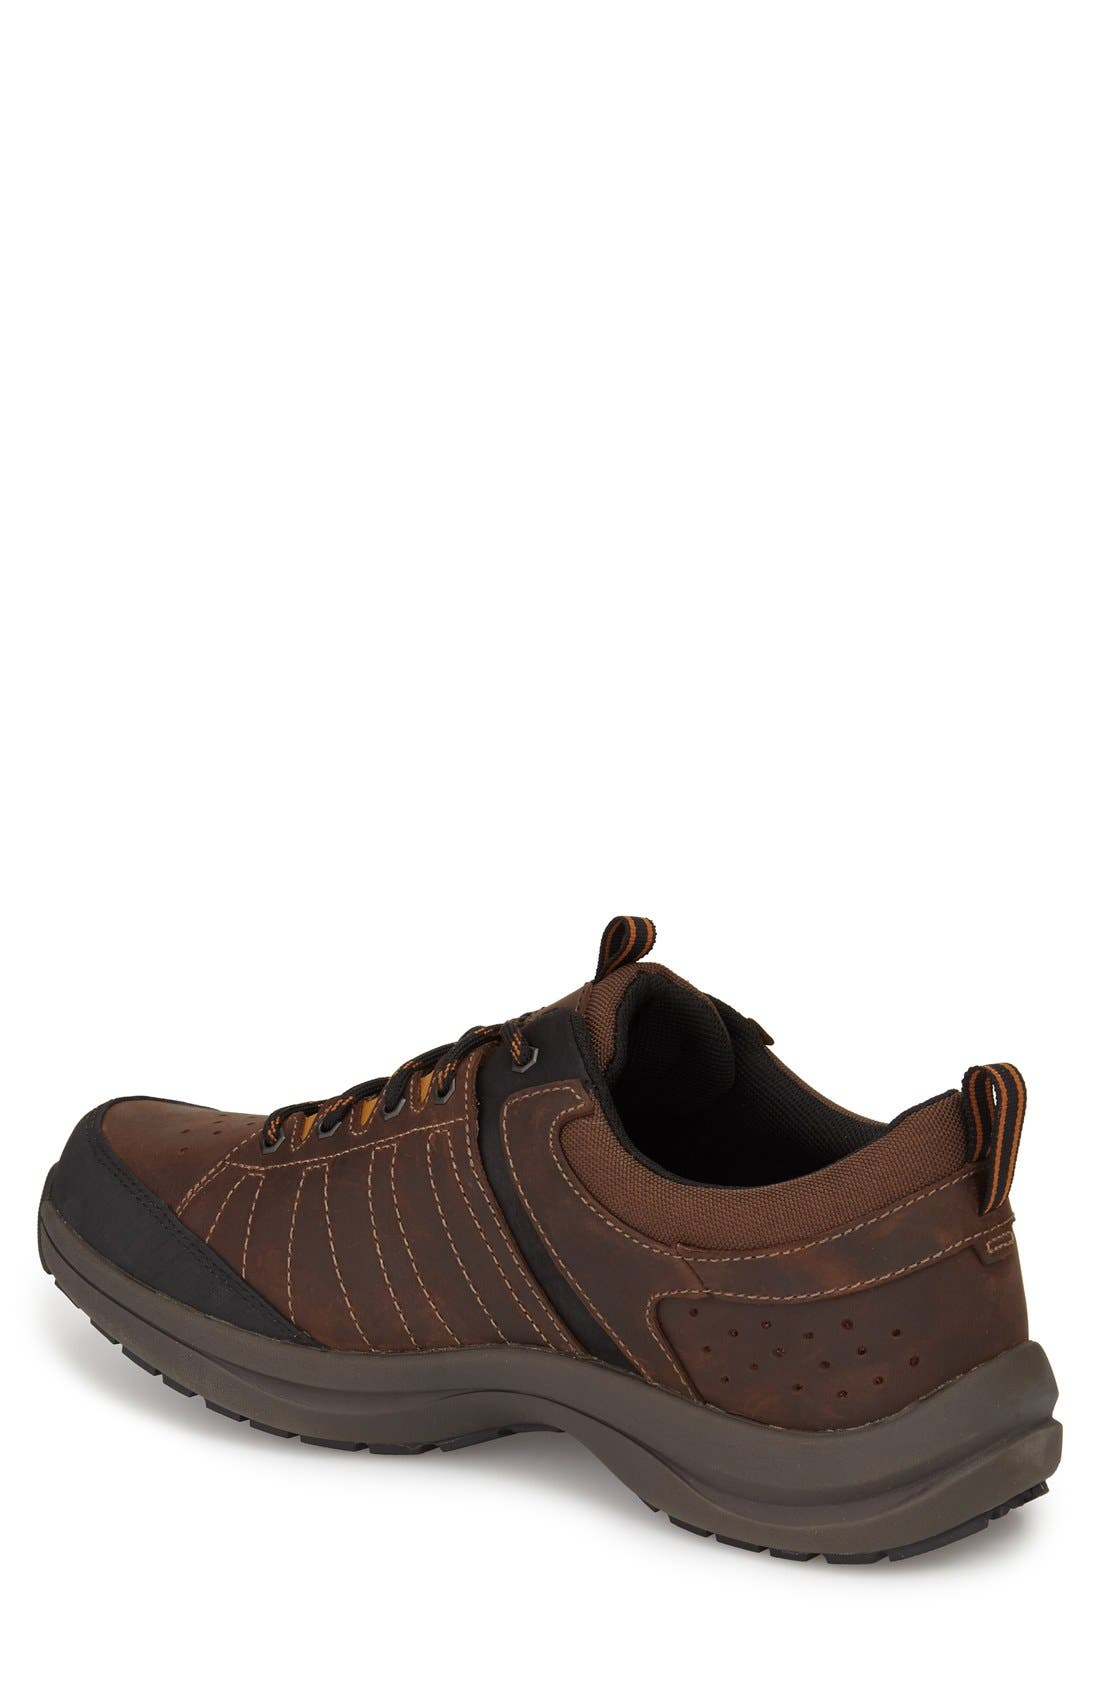 Alternate Image 2  - Dunham Seth-Dun Waterproof Sneaker (Men)